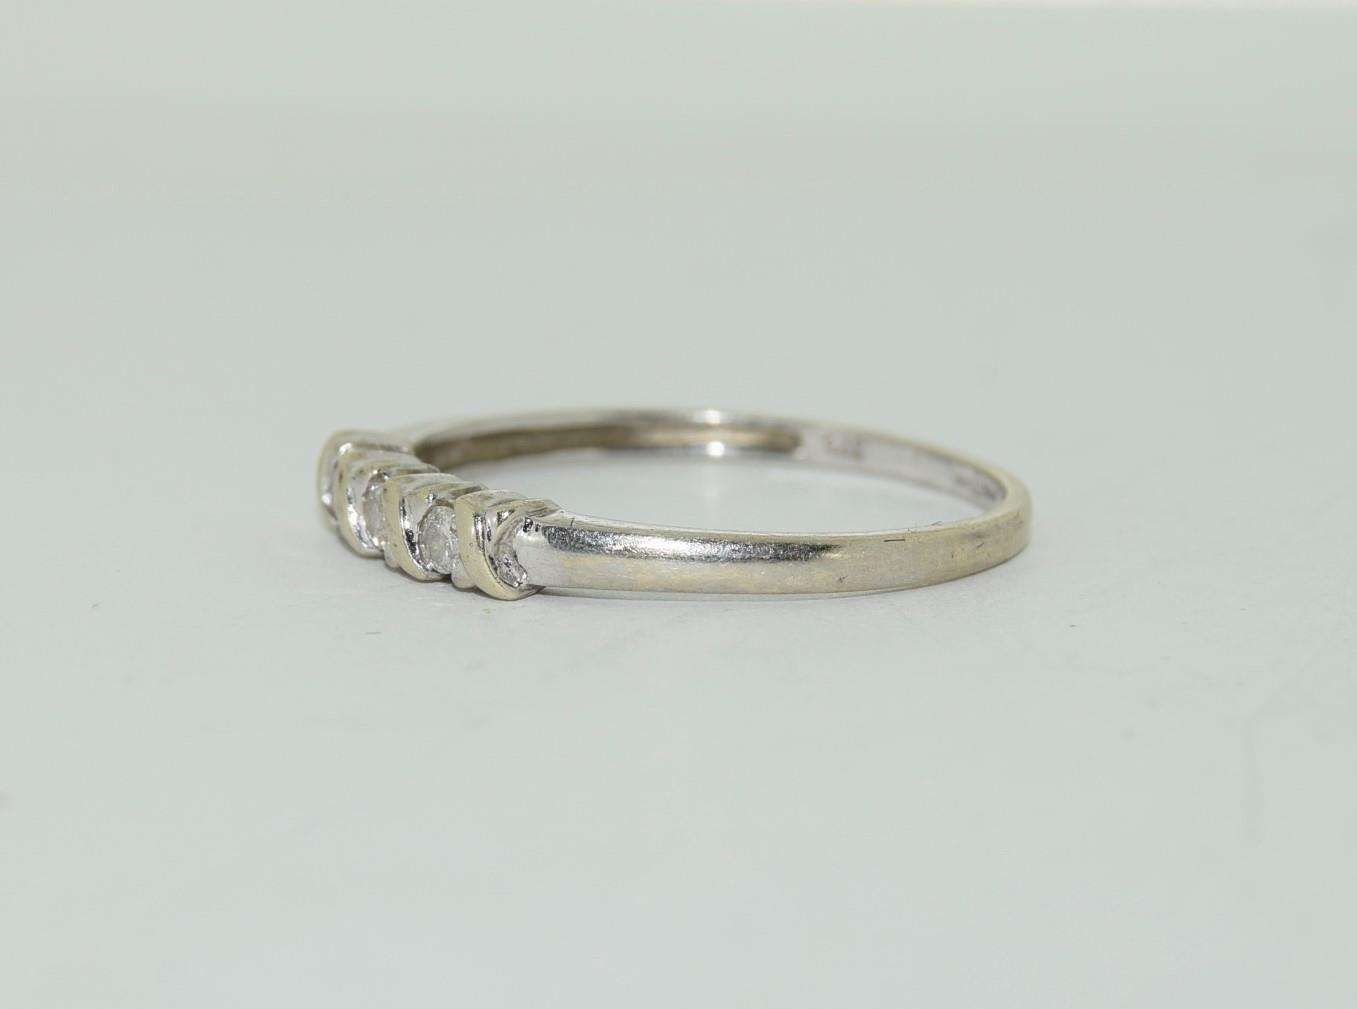 9ct white gold diamond 3 stone ring h/m for 0.1ct size Q - Image 7 of 12